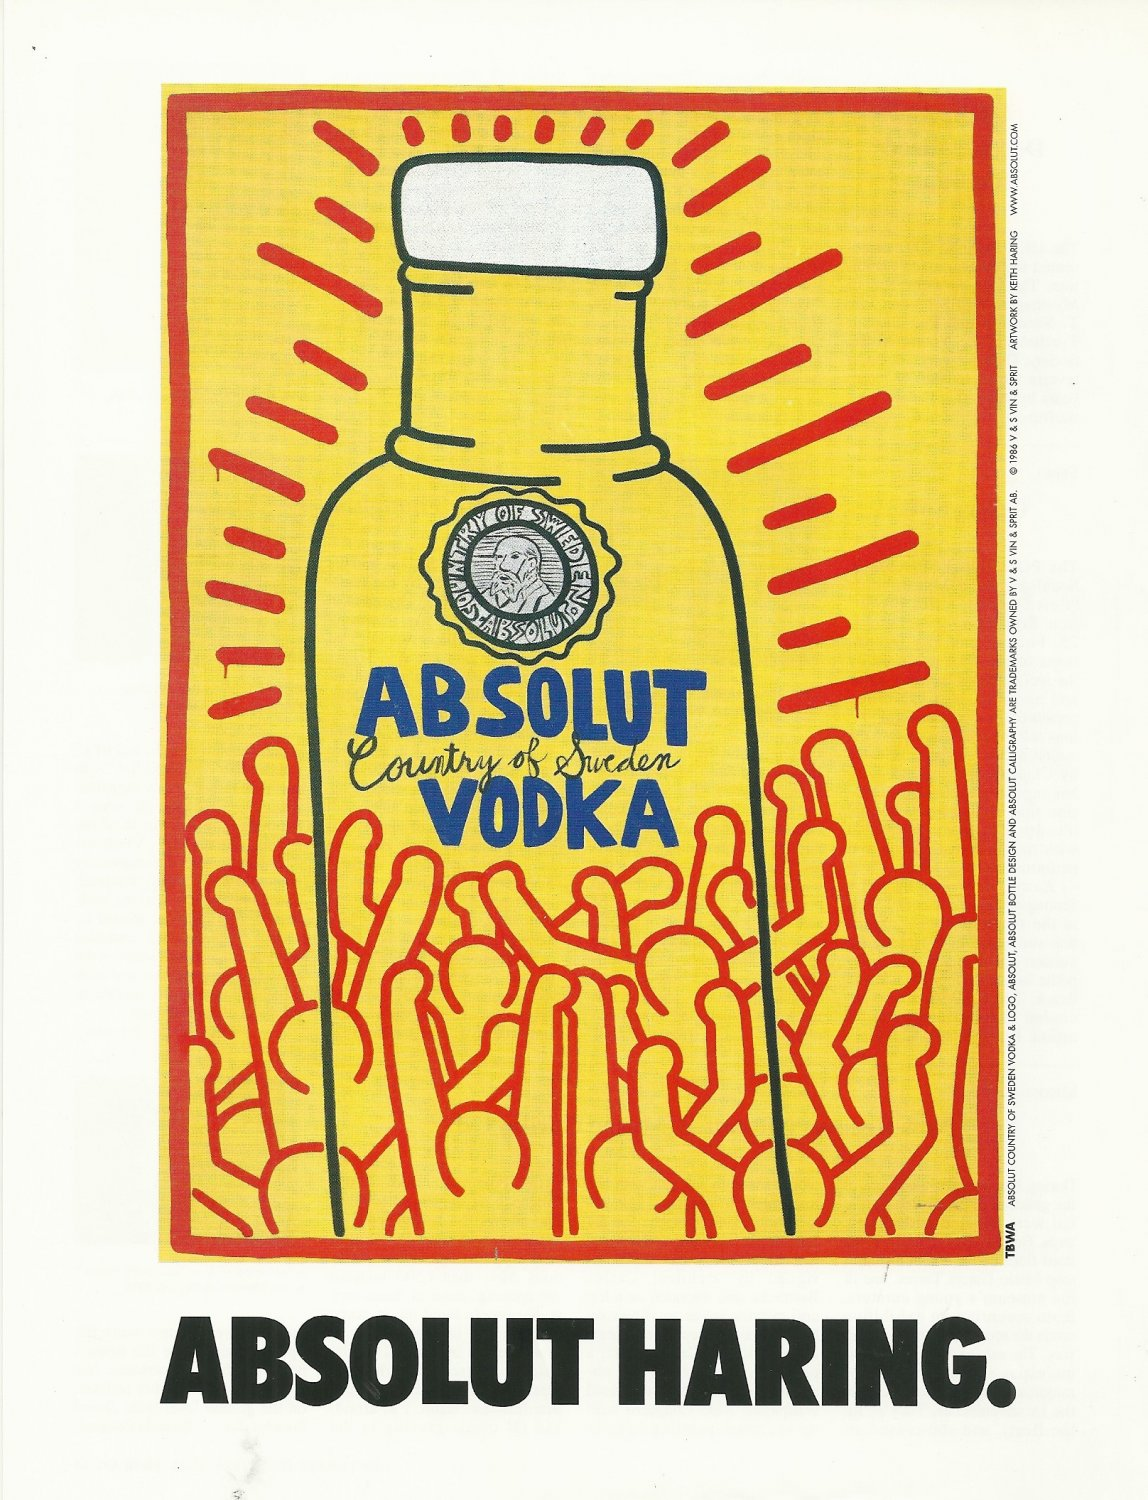 ABSOLUT HARING Italian Version Vodka Magazine Ad w/ Artwork by Keith Haring